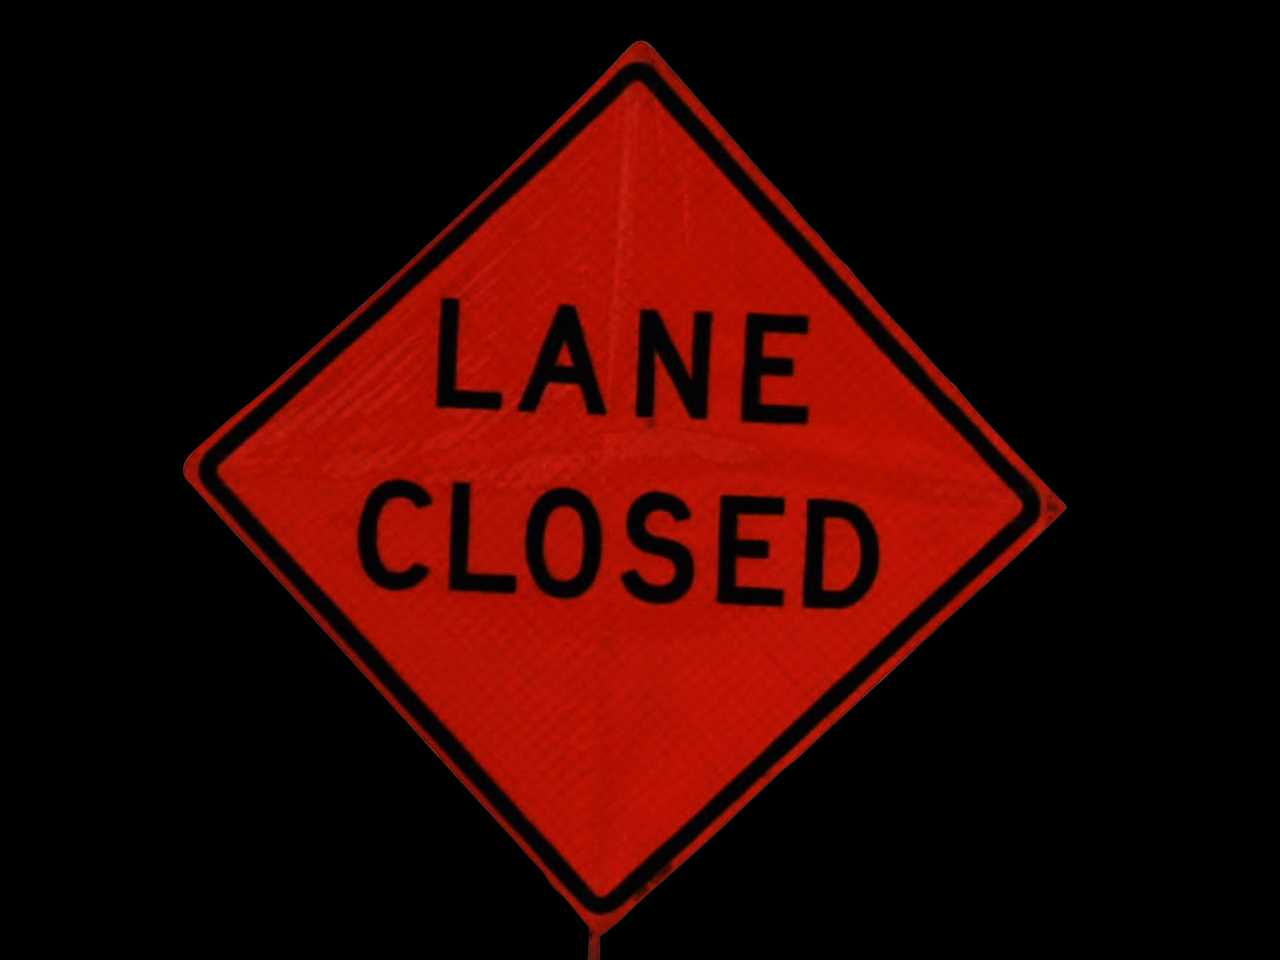 lane closure_1537976058618.png.jpg